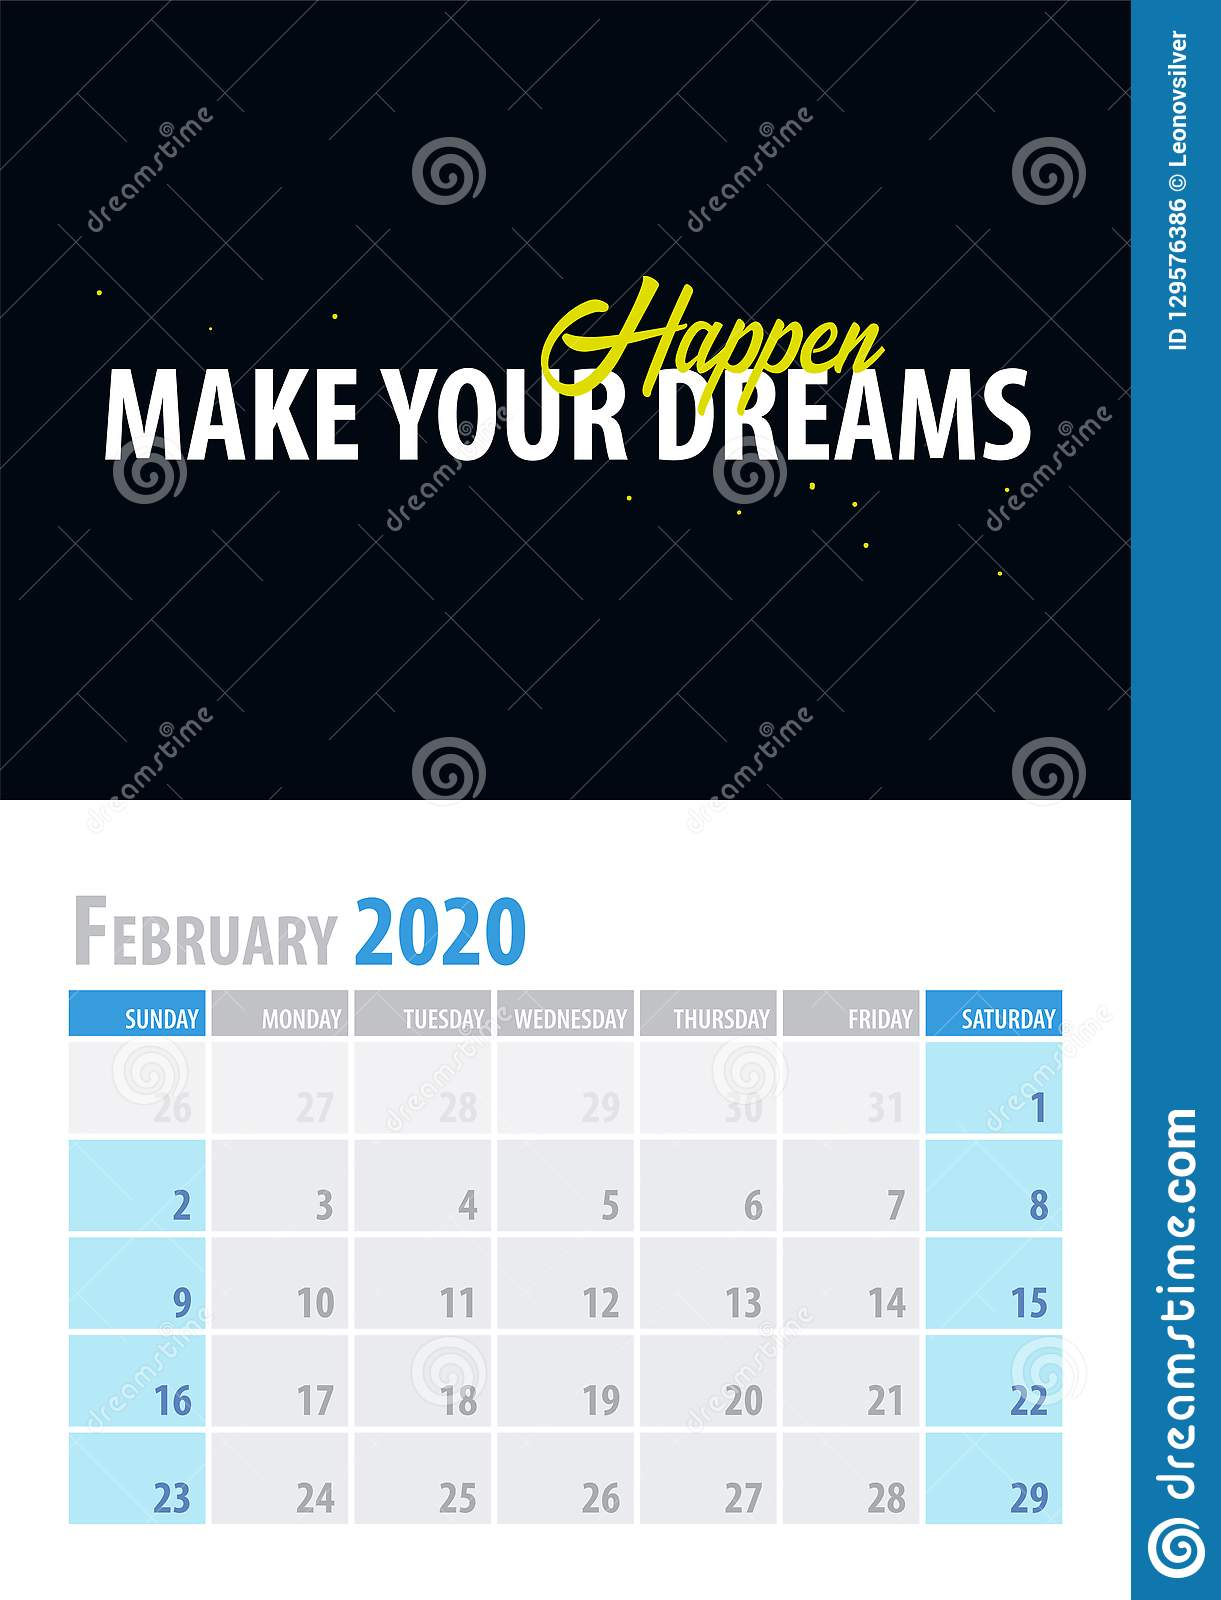 February Calendar Background 2020 February. Calendar Planner 2020 With Motivational Quote On Black